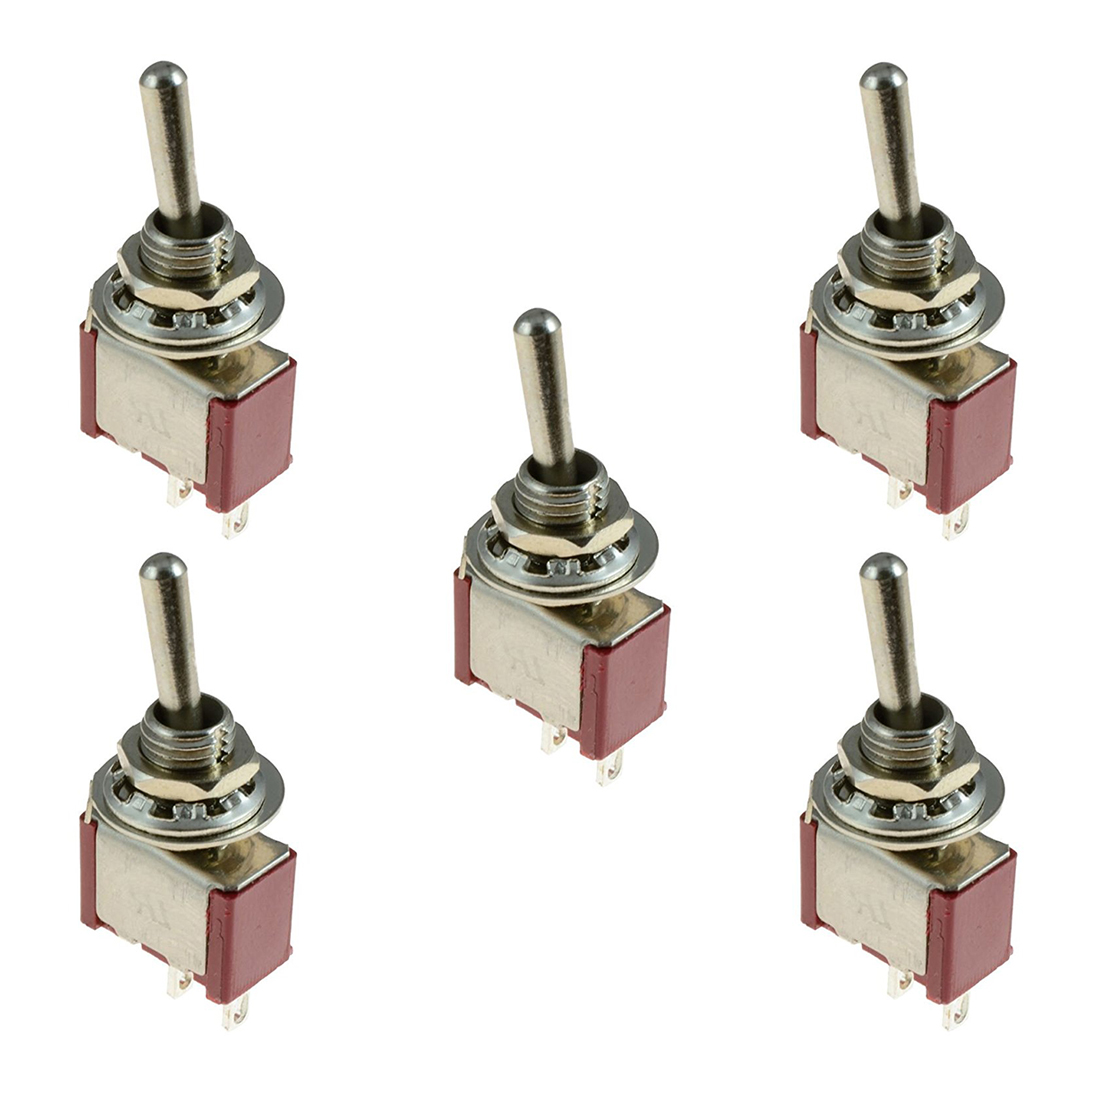 5 x On/Off Small Toggle Switch Miniature SPST 6mm - AC250V 3A 120V 5A 4 10pcs 250v 15a kn1322 toggle switch 6 pins touch on off switches mini small switch controlling the circuits of ac or dc